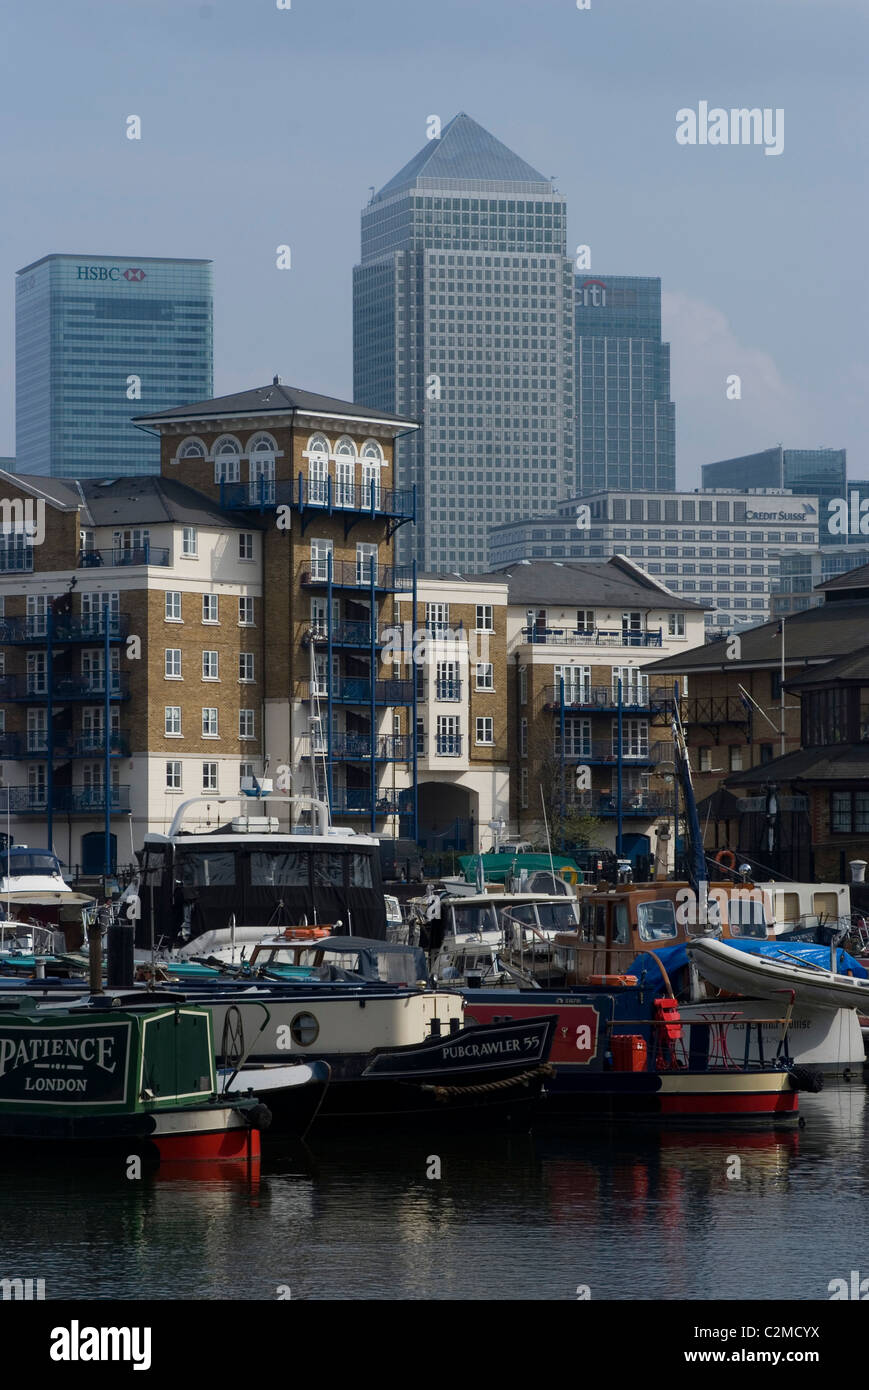 Limehouse Basin and boats with view of Canary Wharf, London. - Stock Image